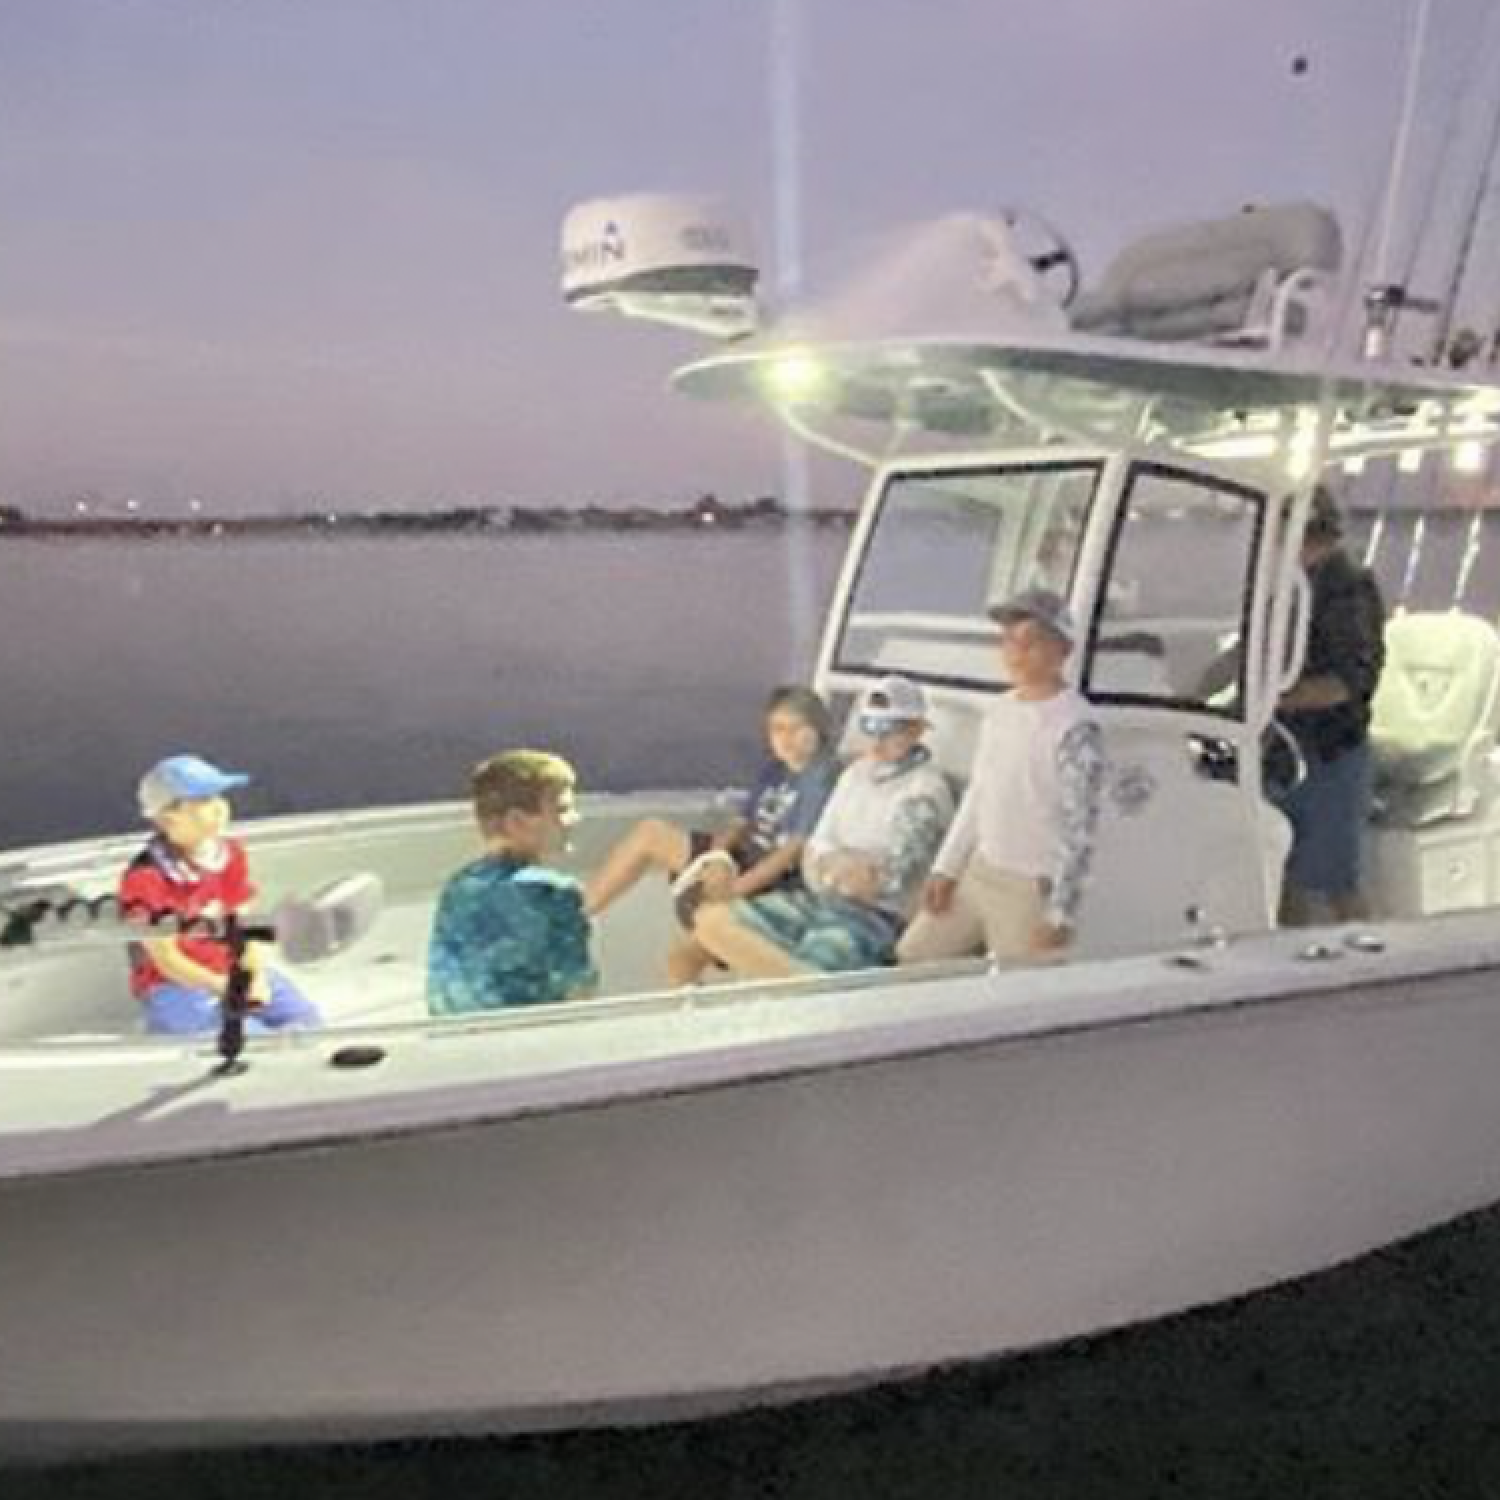 Title: Big day comin up!! - On board their Sportsman Open 282 Center Console - Location: Sarasota Florida. Participating in the Photo Contest #SportsmanJune2021